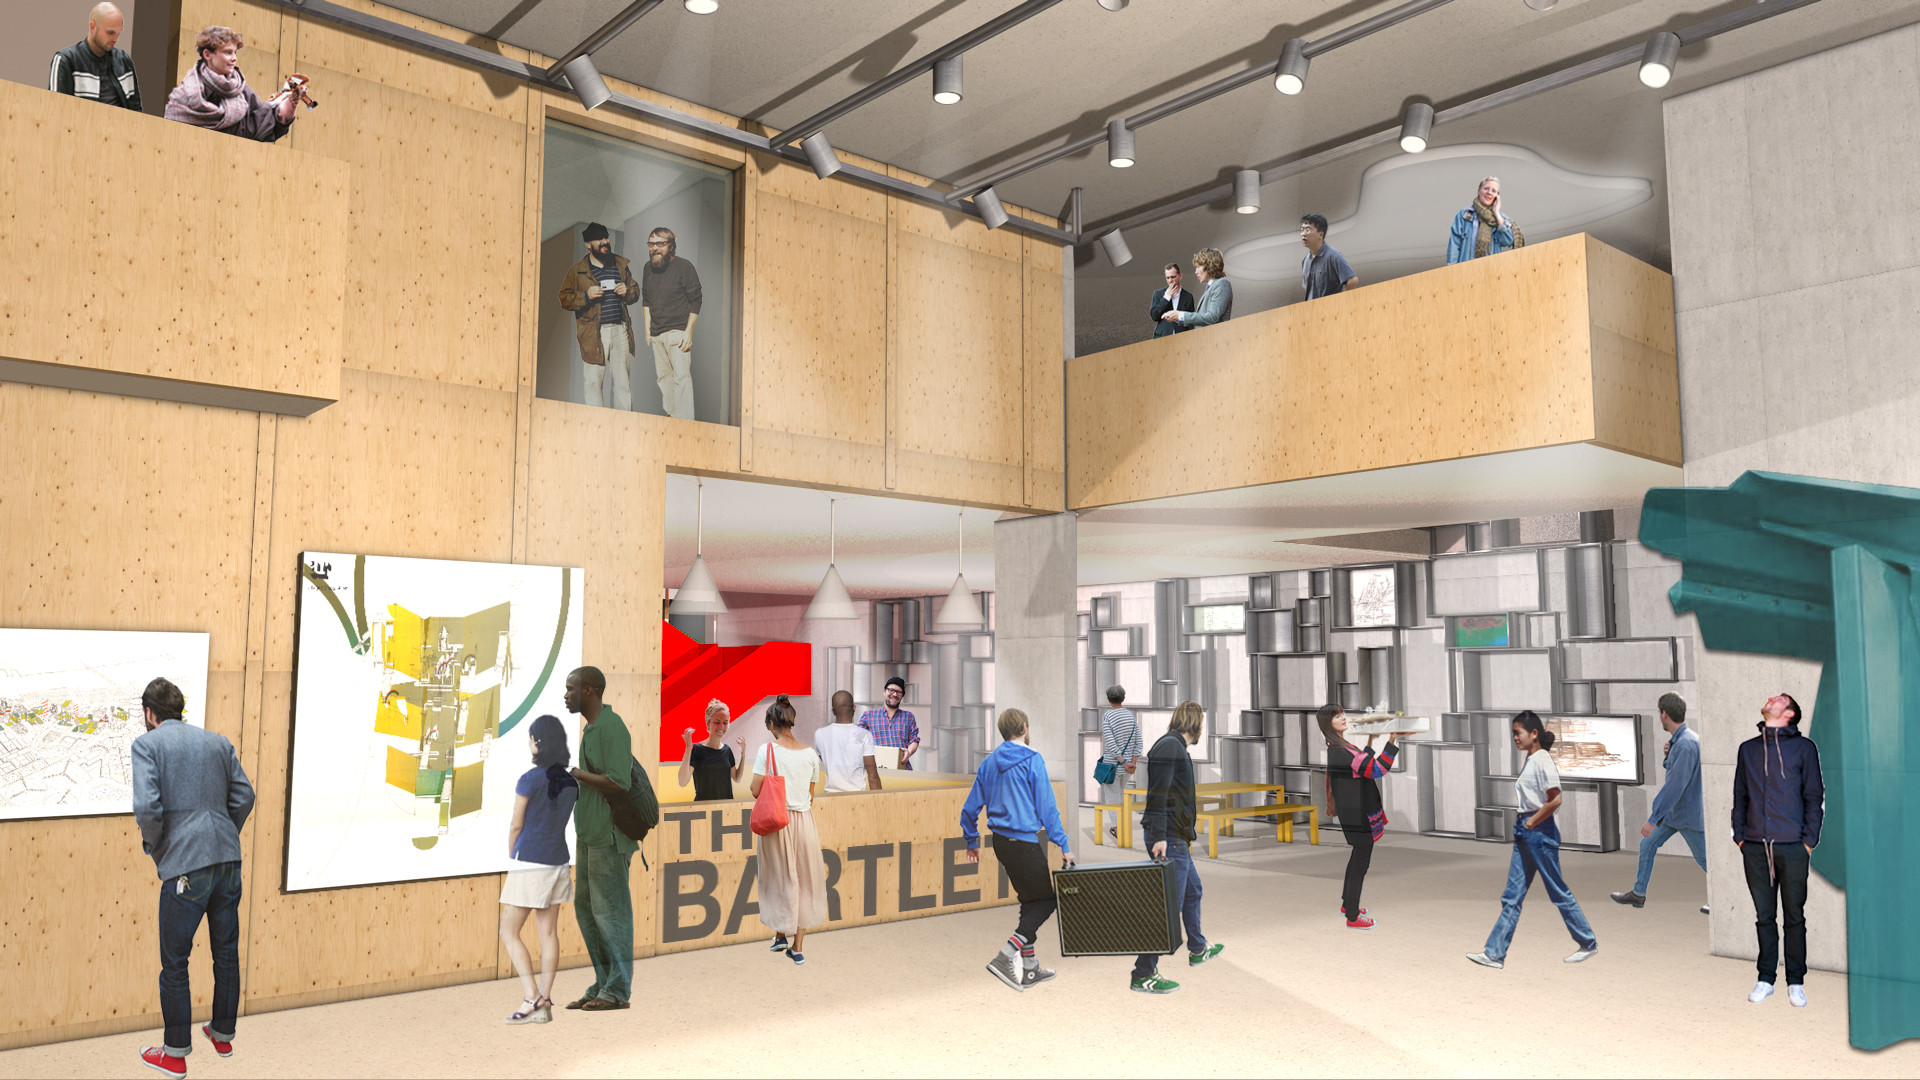 hawkinsbrown reveal plans for bartlett school revamp | archdaily